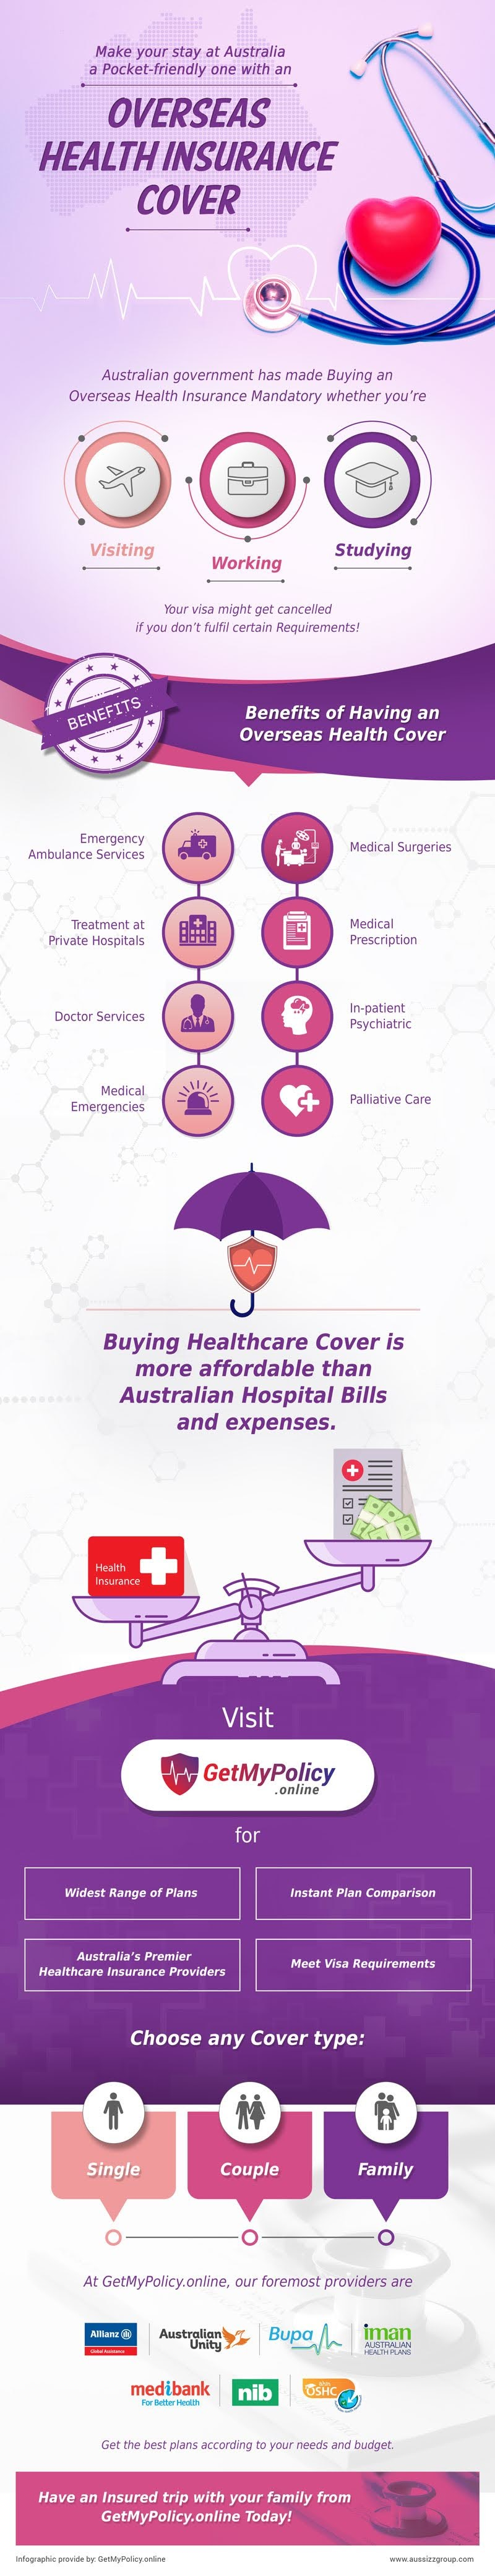 Pocket-friendly one with an Overseas Health Insurance Cover #infographic